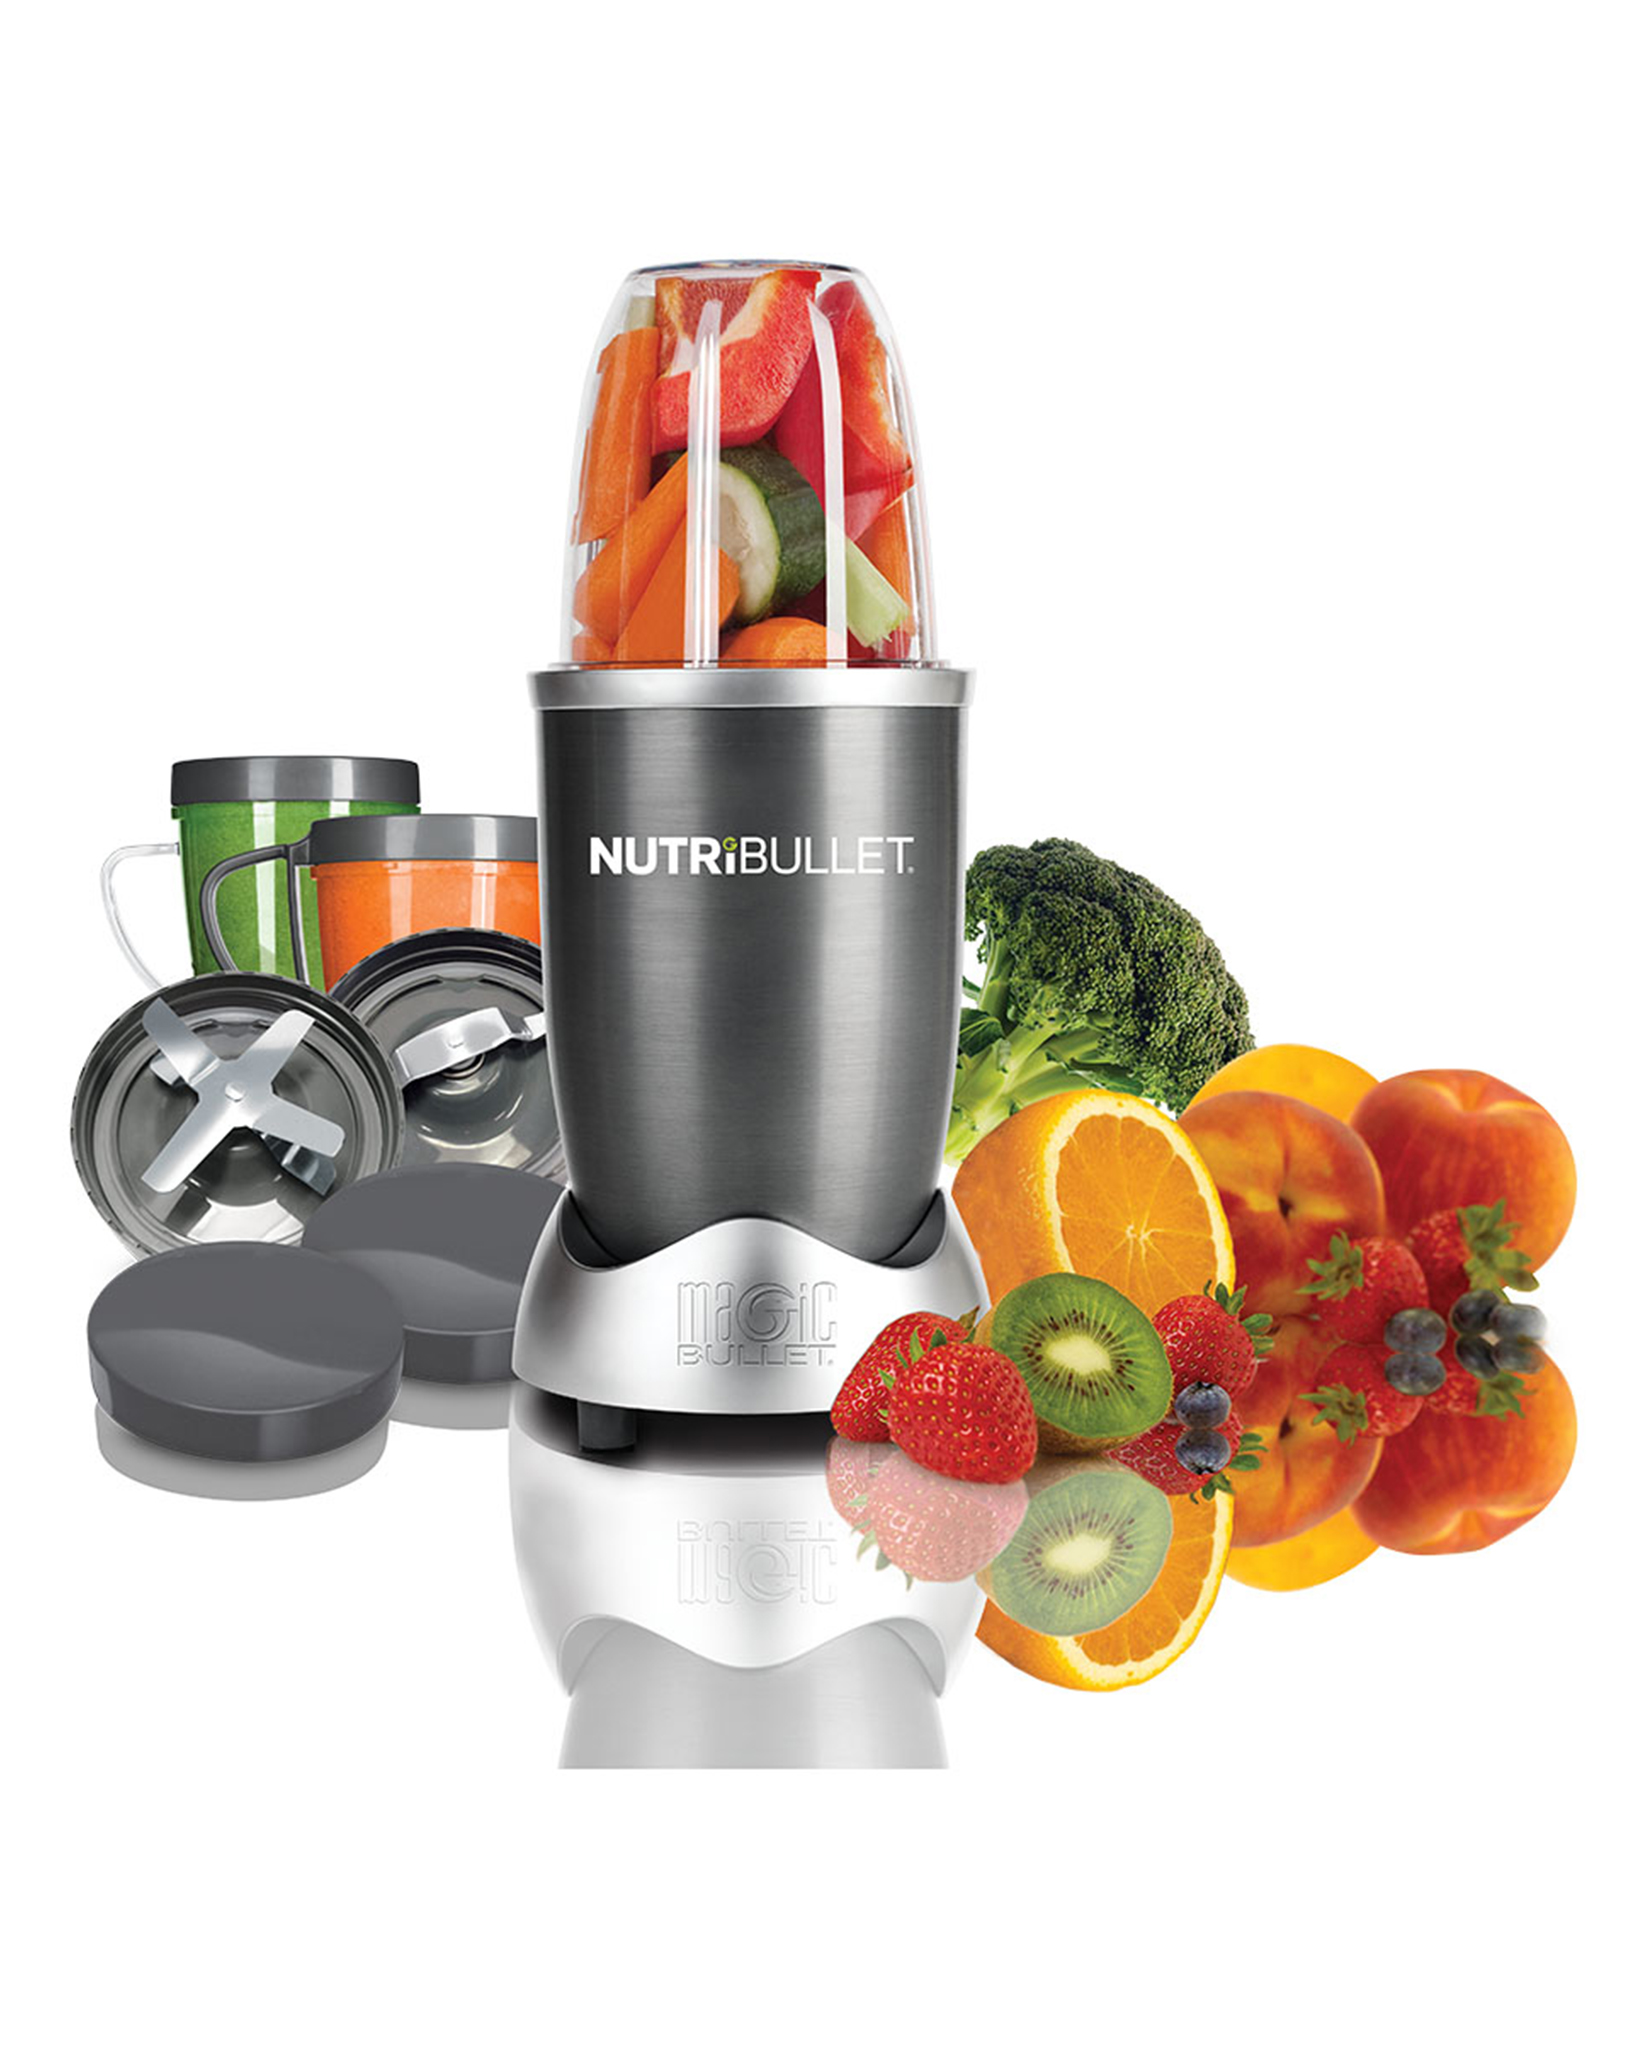 nutribullet-main